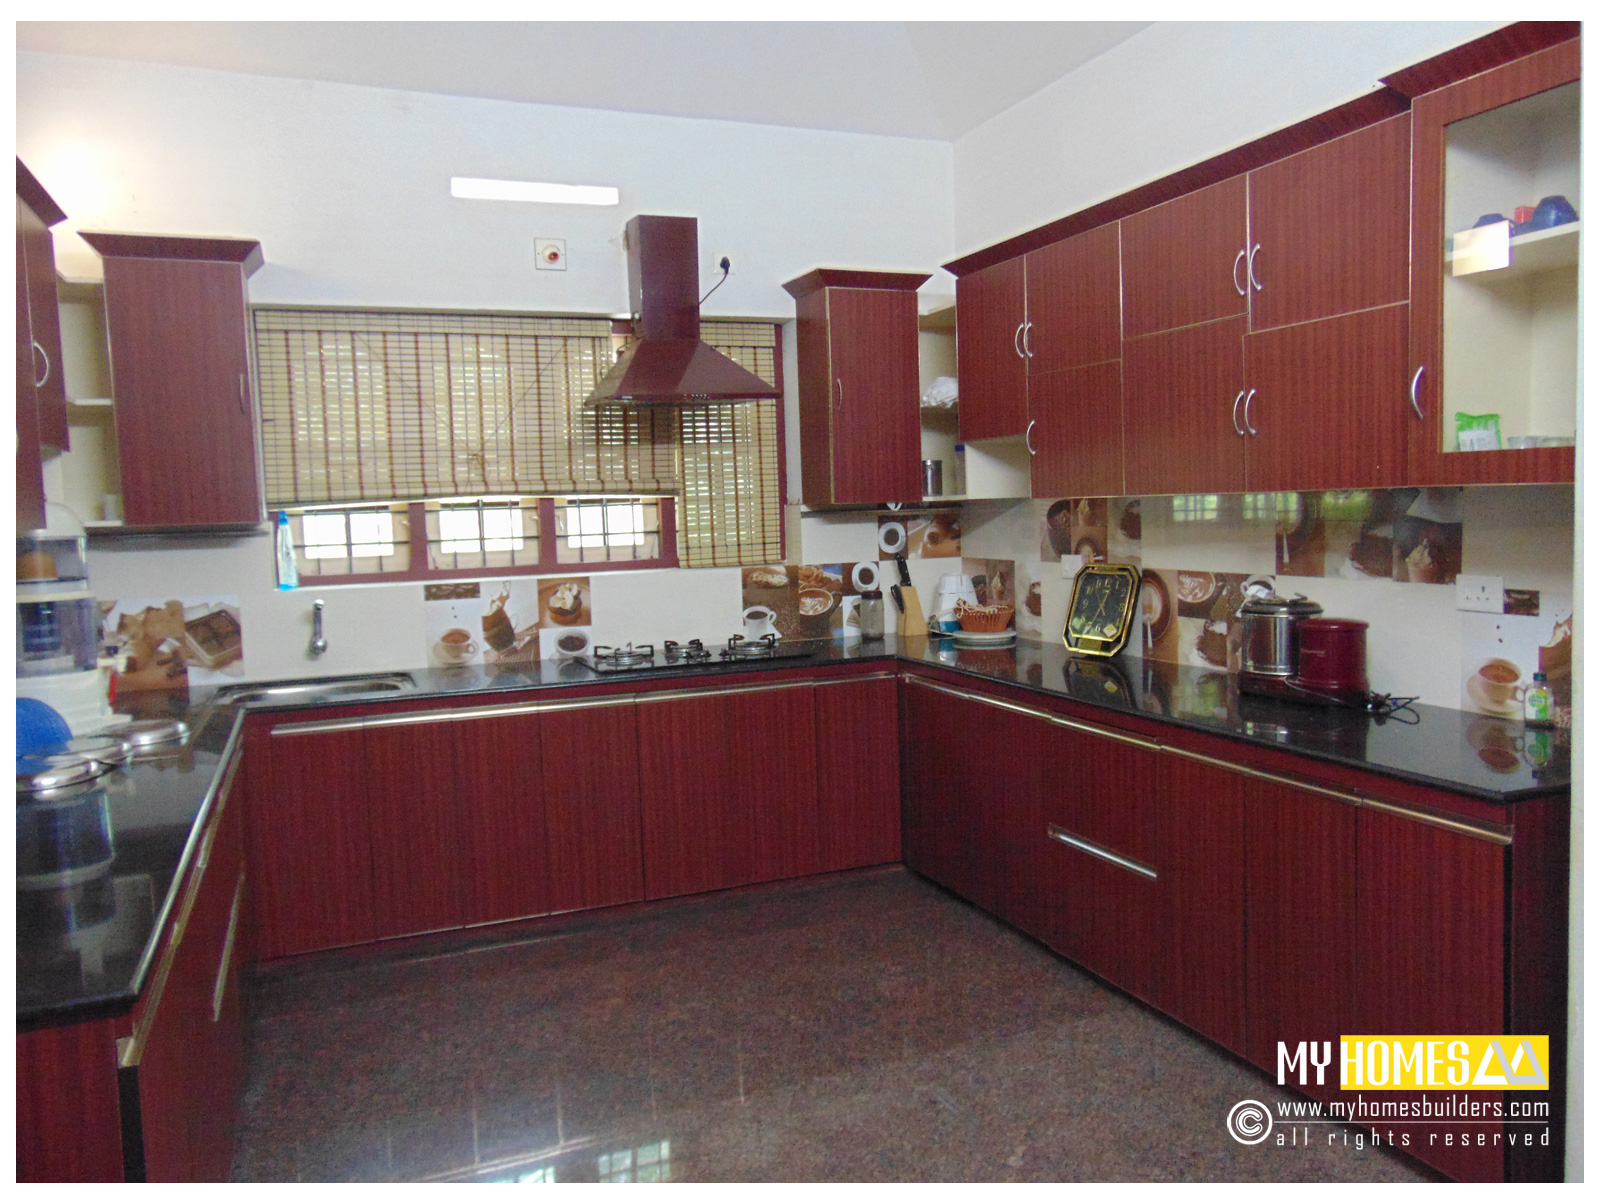 Budget house kerala home designers builder in thrissur india Designers homes